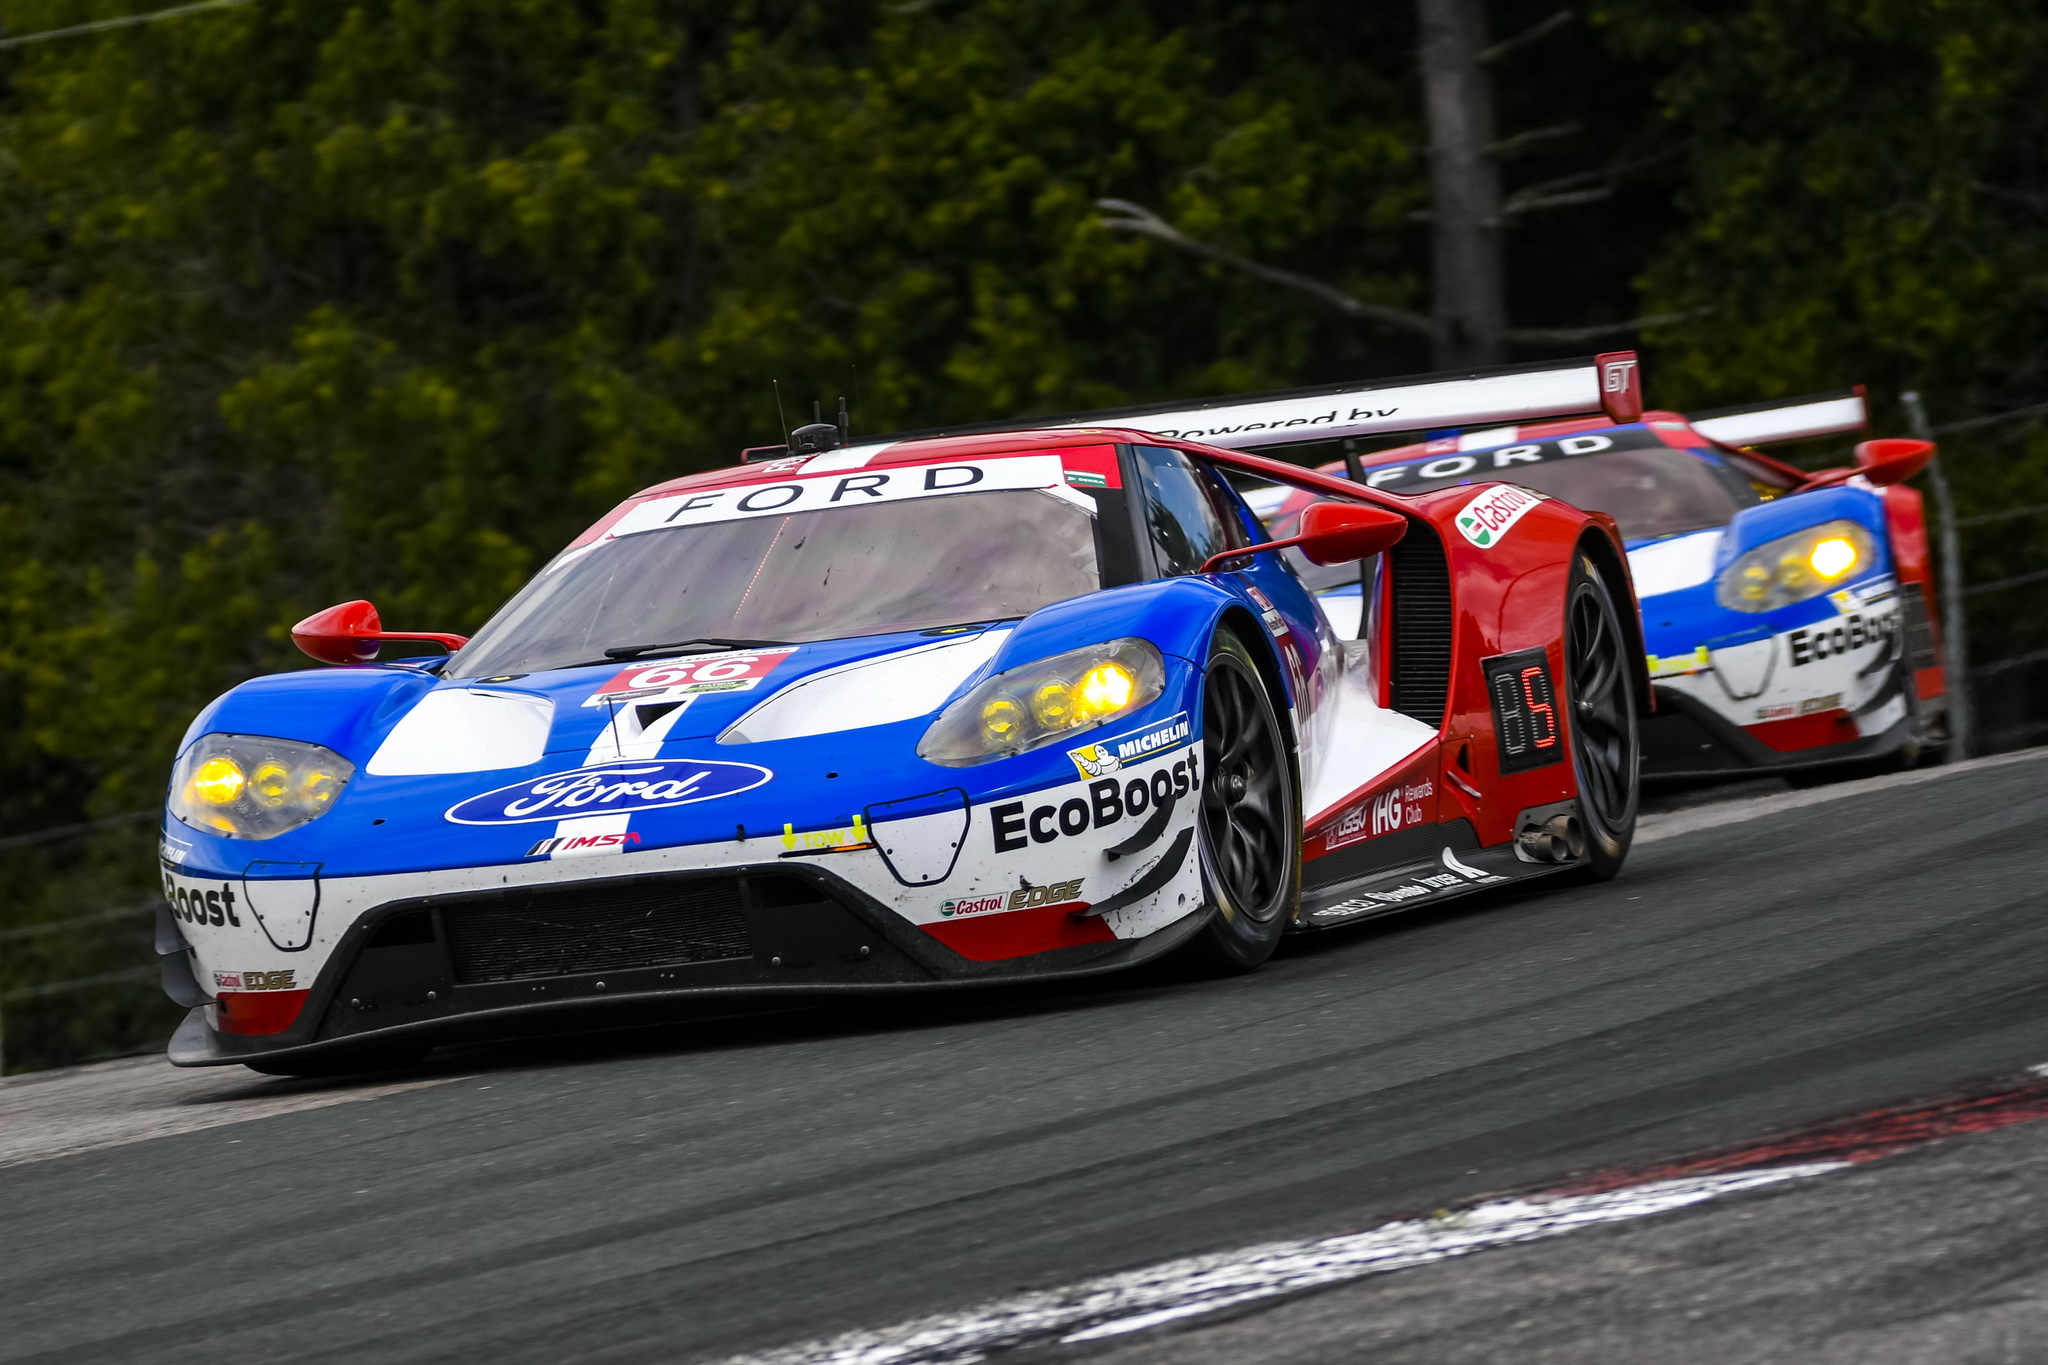 Ford Chip Ganassi Racing Prepared for All-GT Class Race at Connecticut's Lime Rock Park